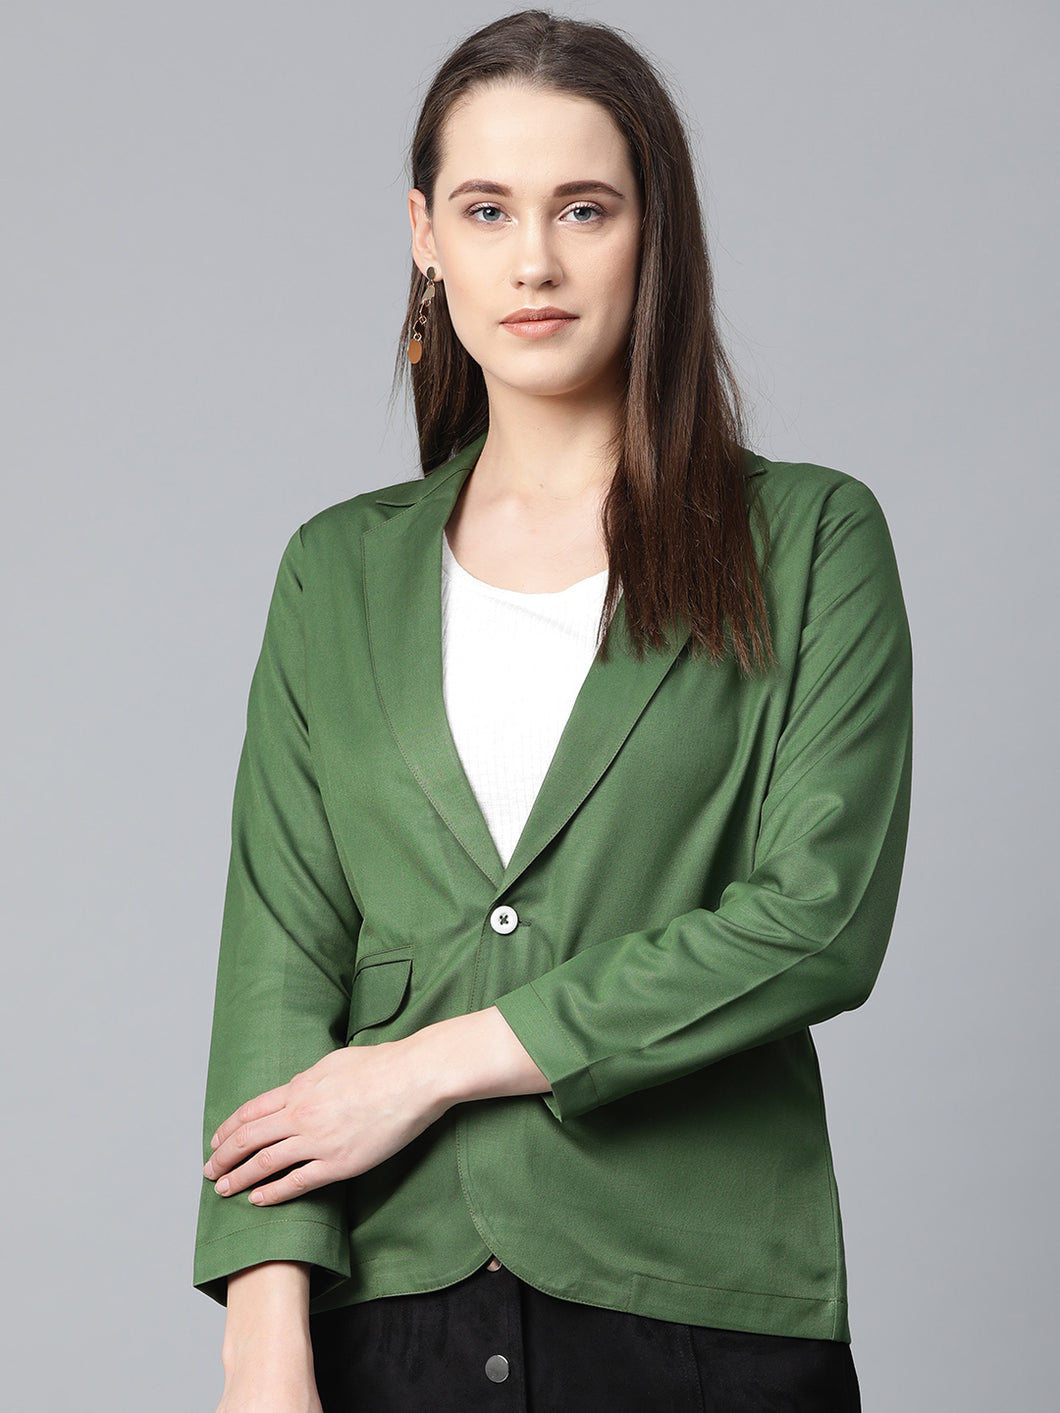 Jompers Women Olive-Green Solid Single-Breasted Smart Casual Blazer